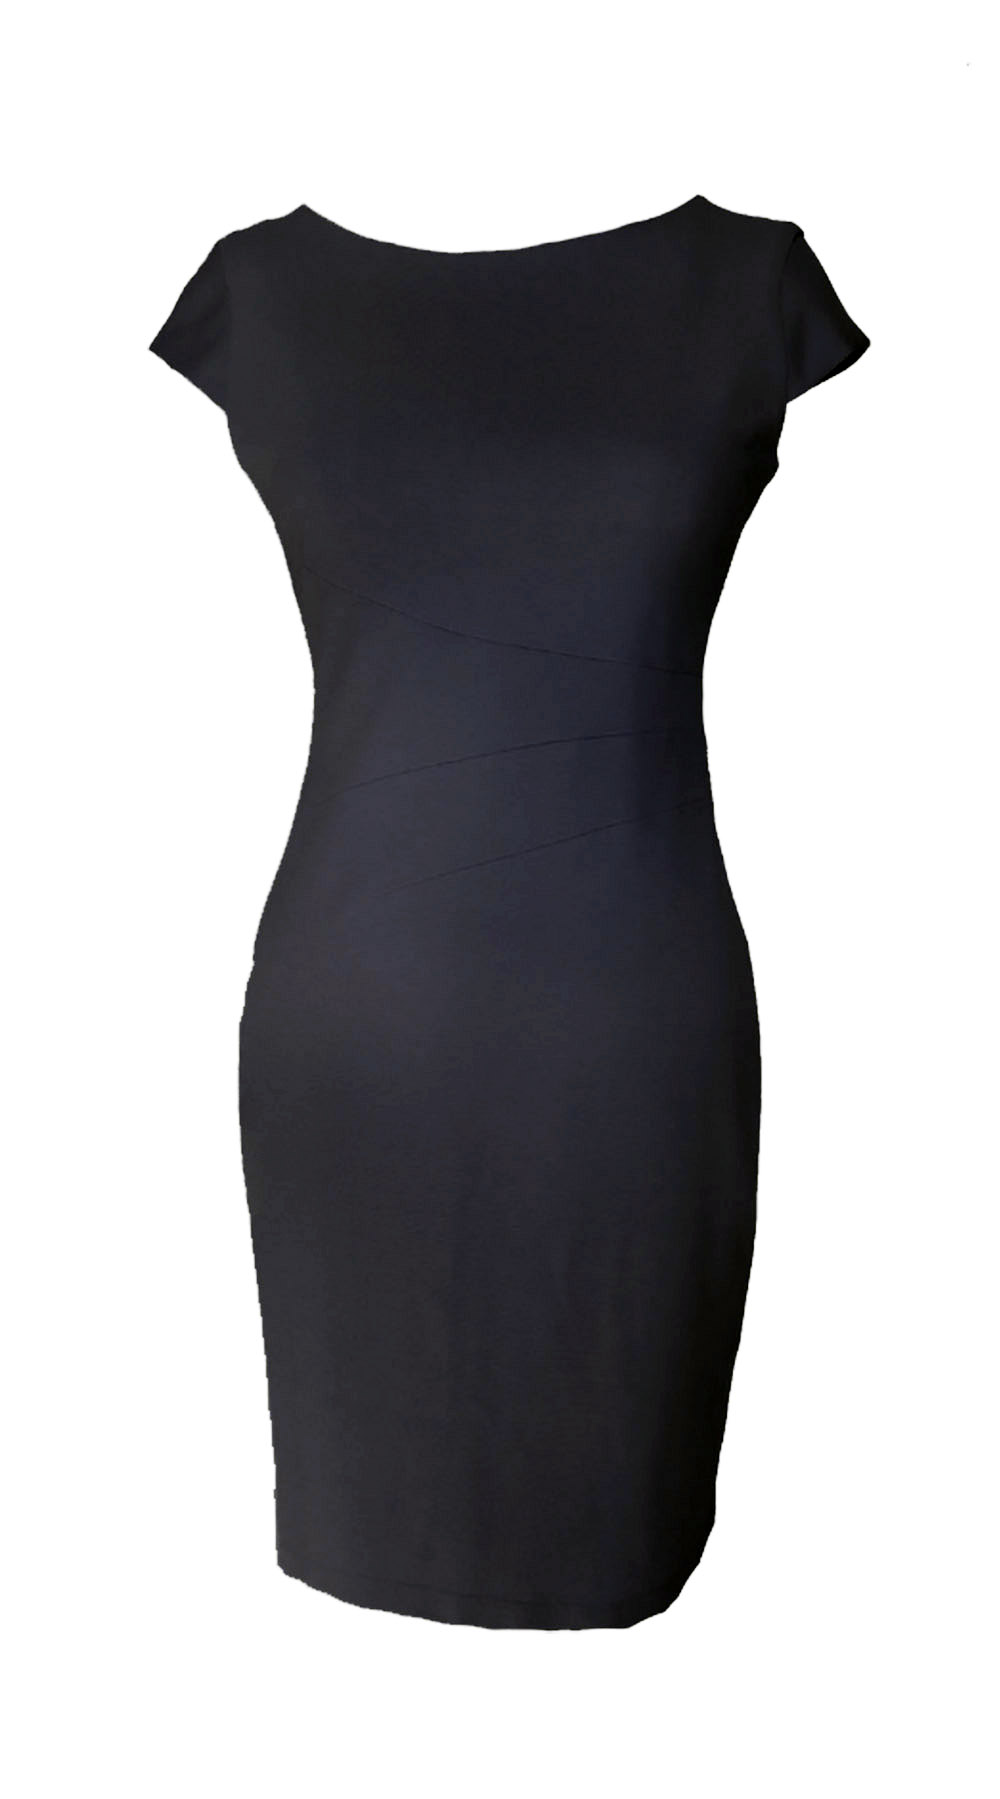 dress verana cap navy.jpg